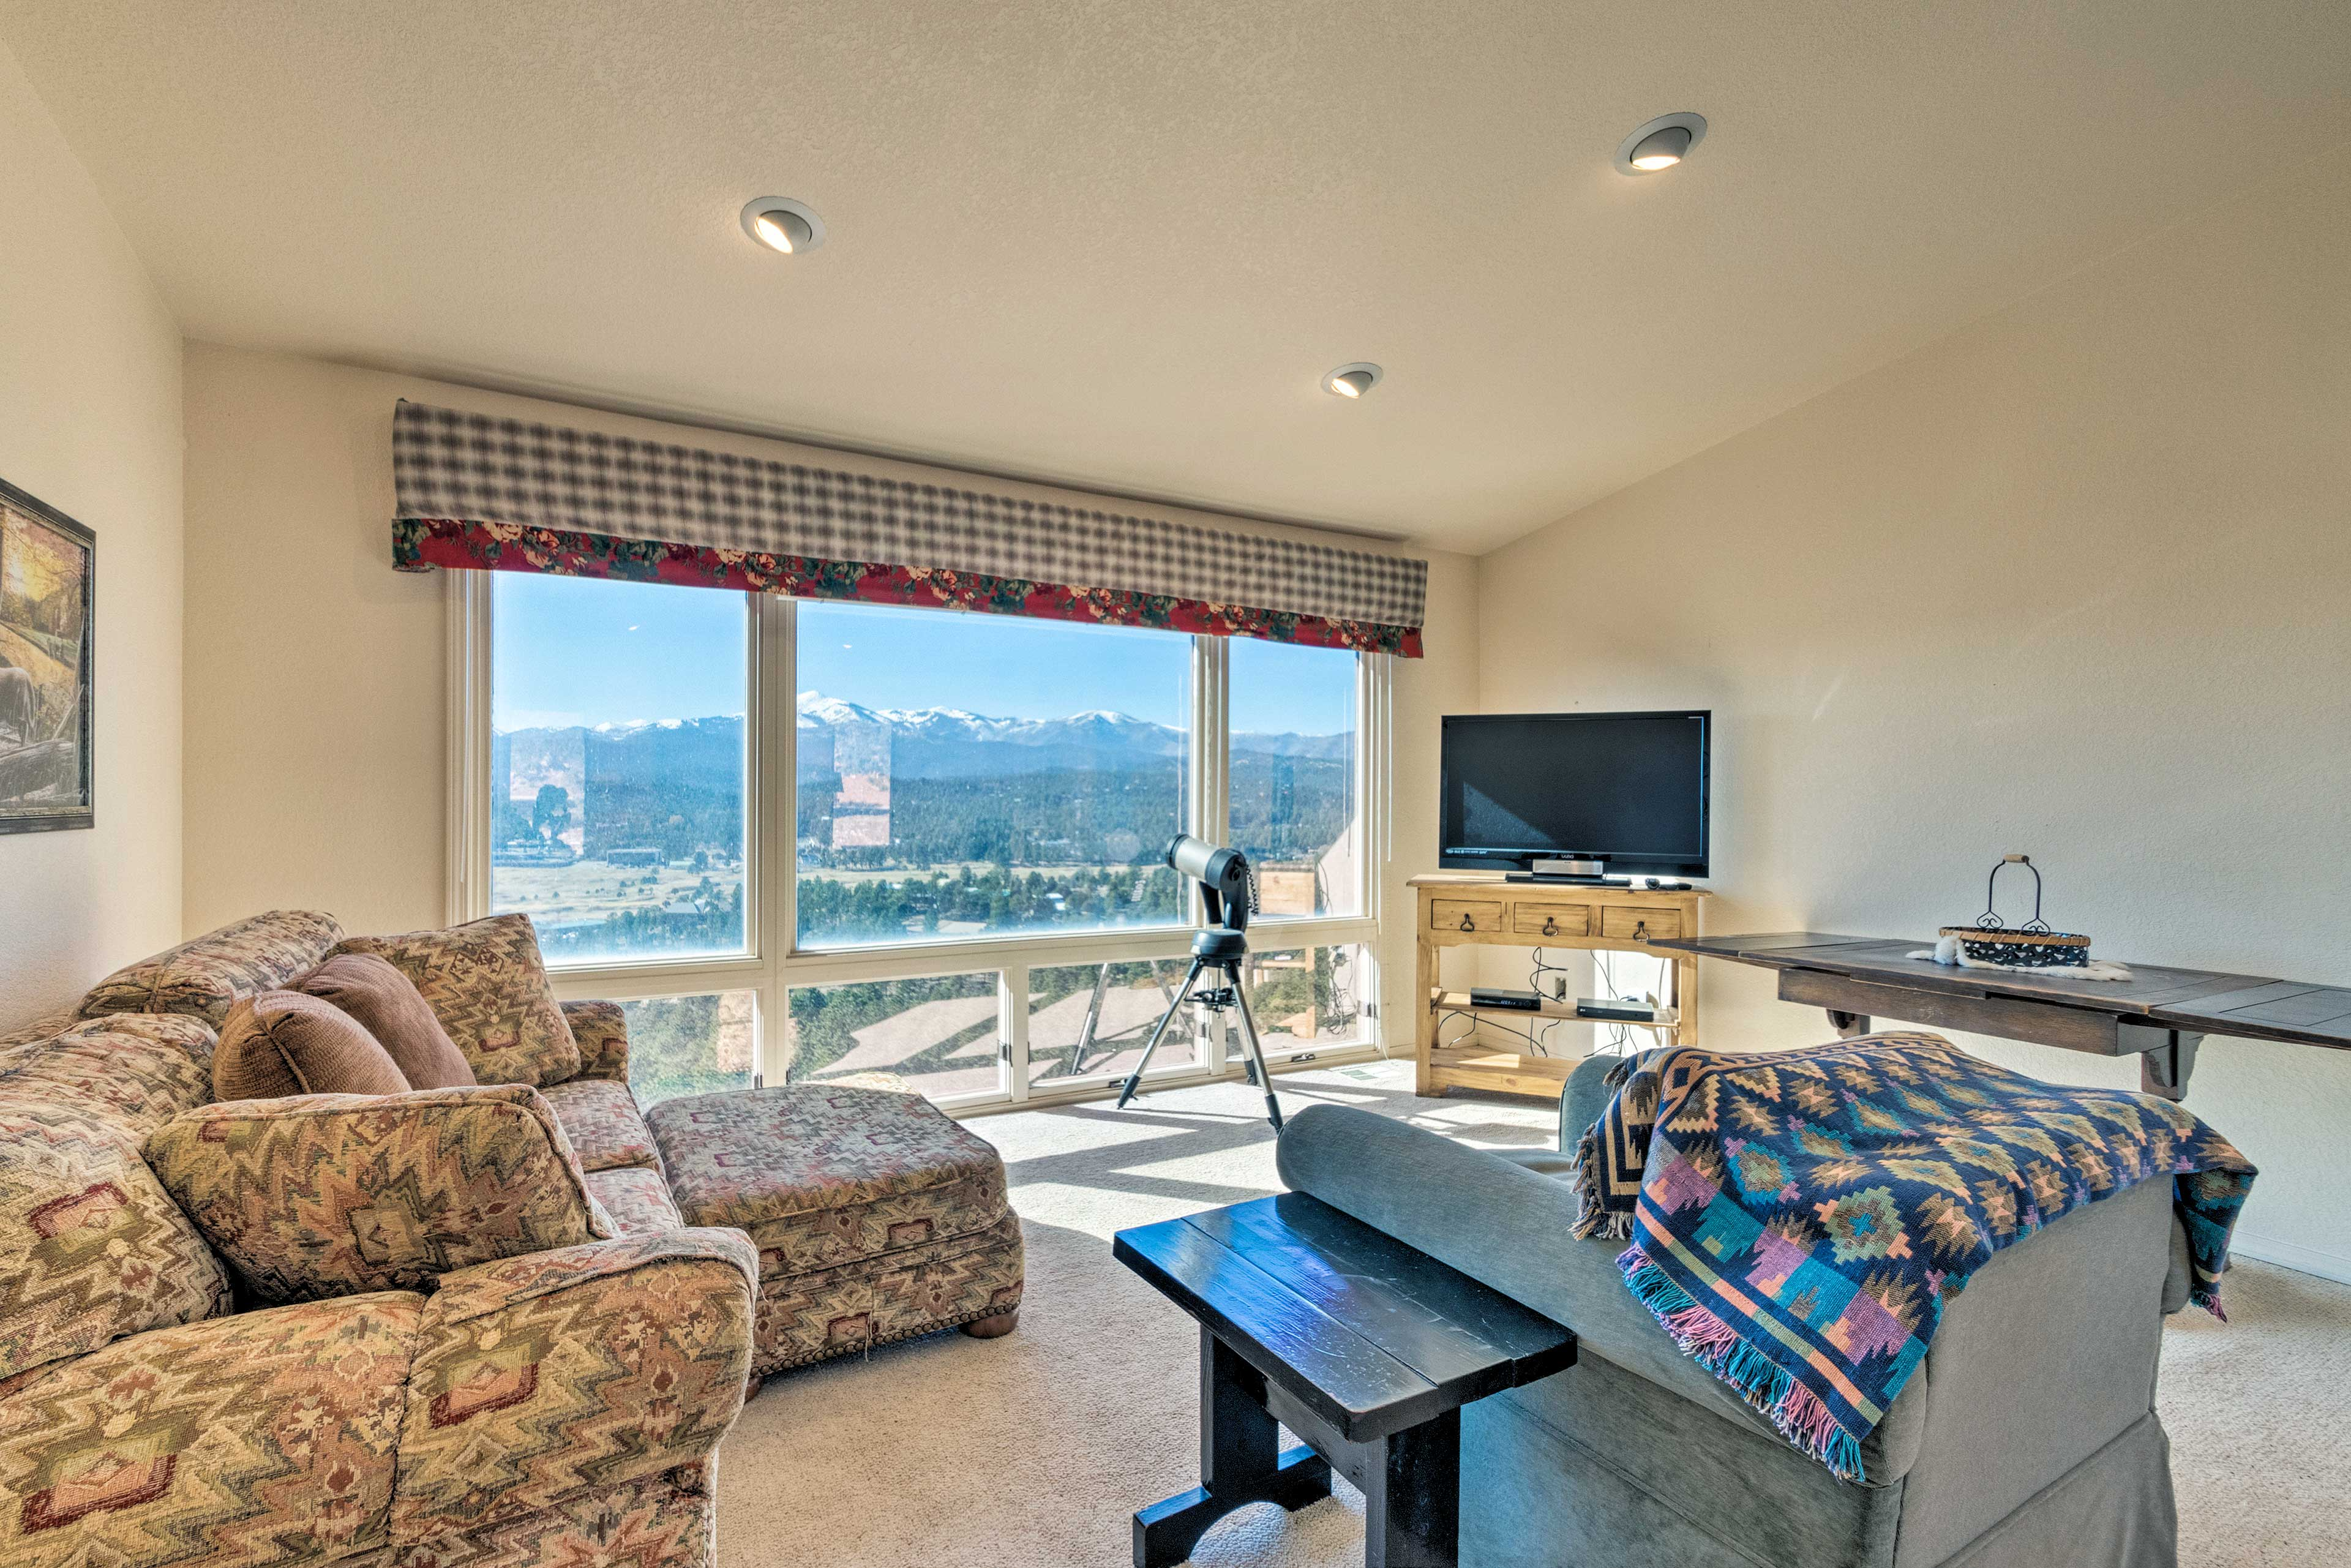 The seating area allows a closer look at the breathtaking mountain view.